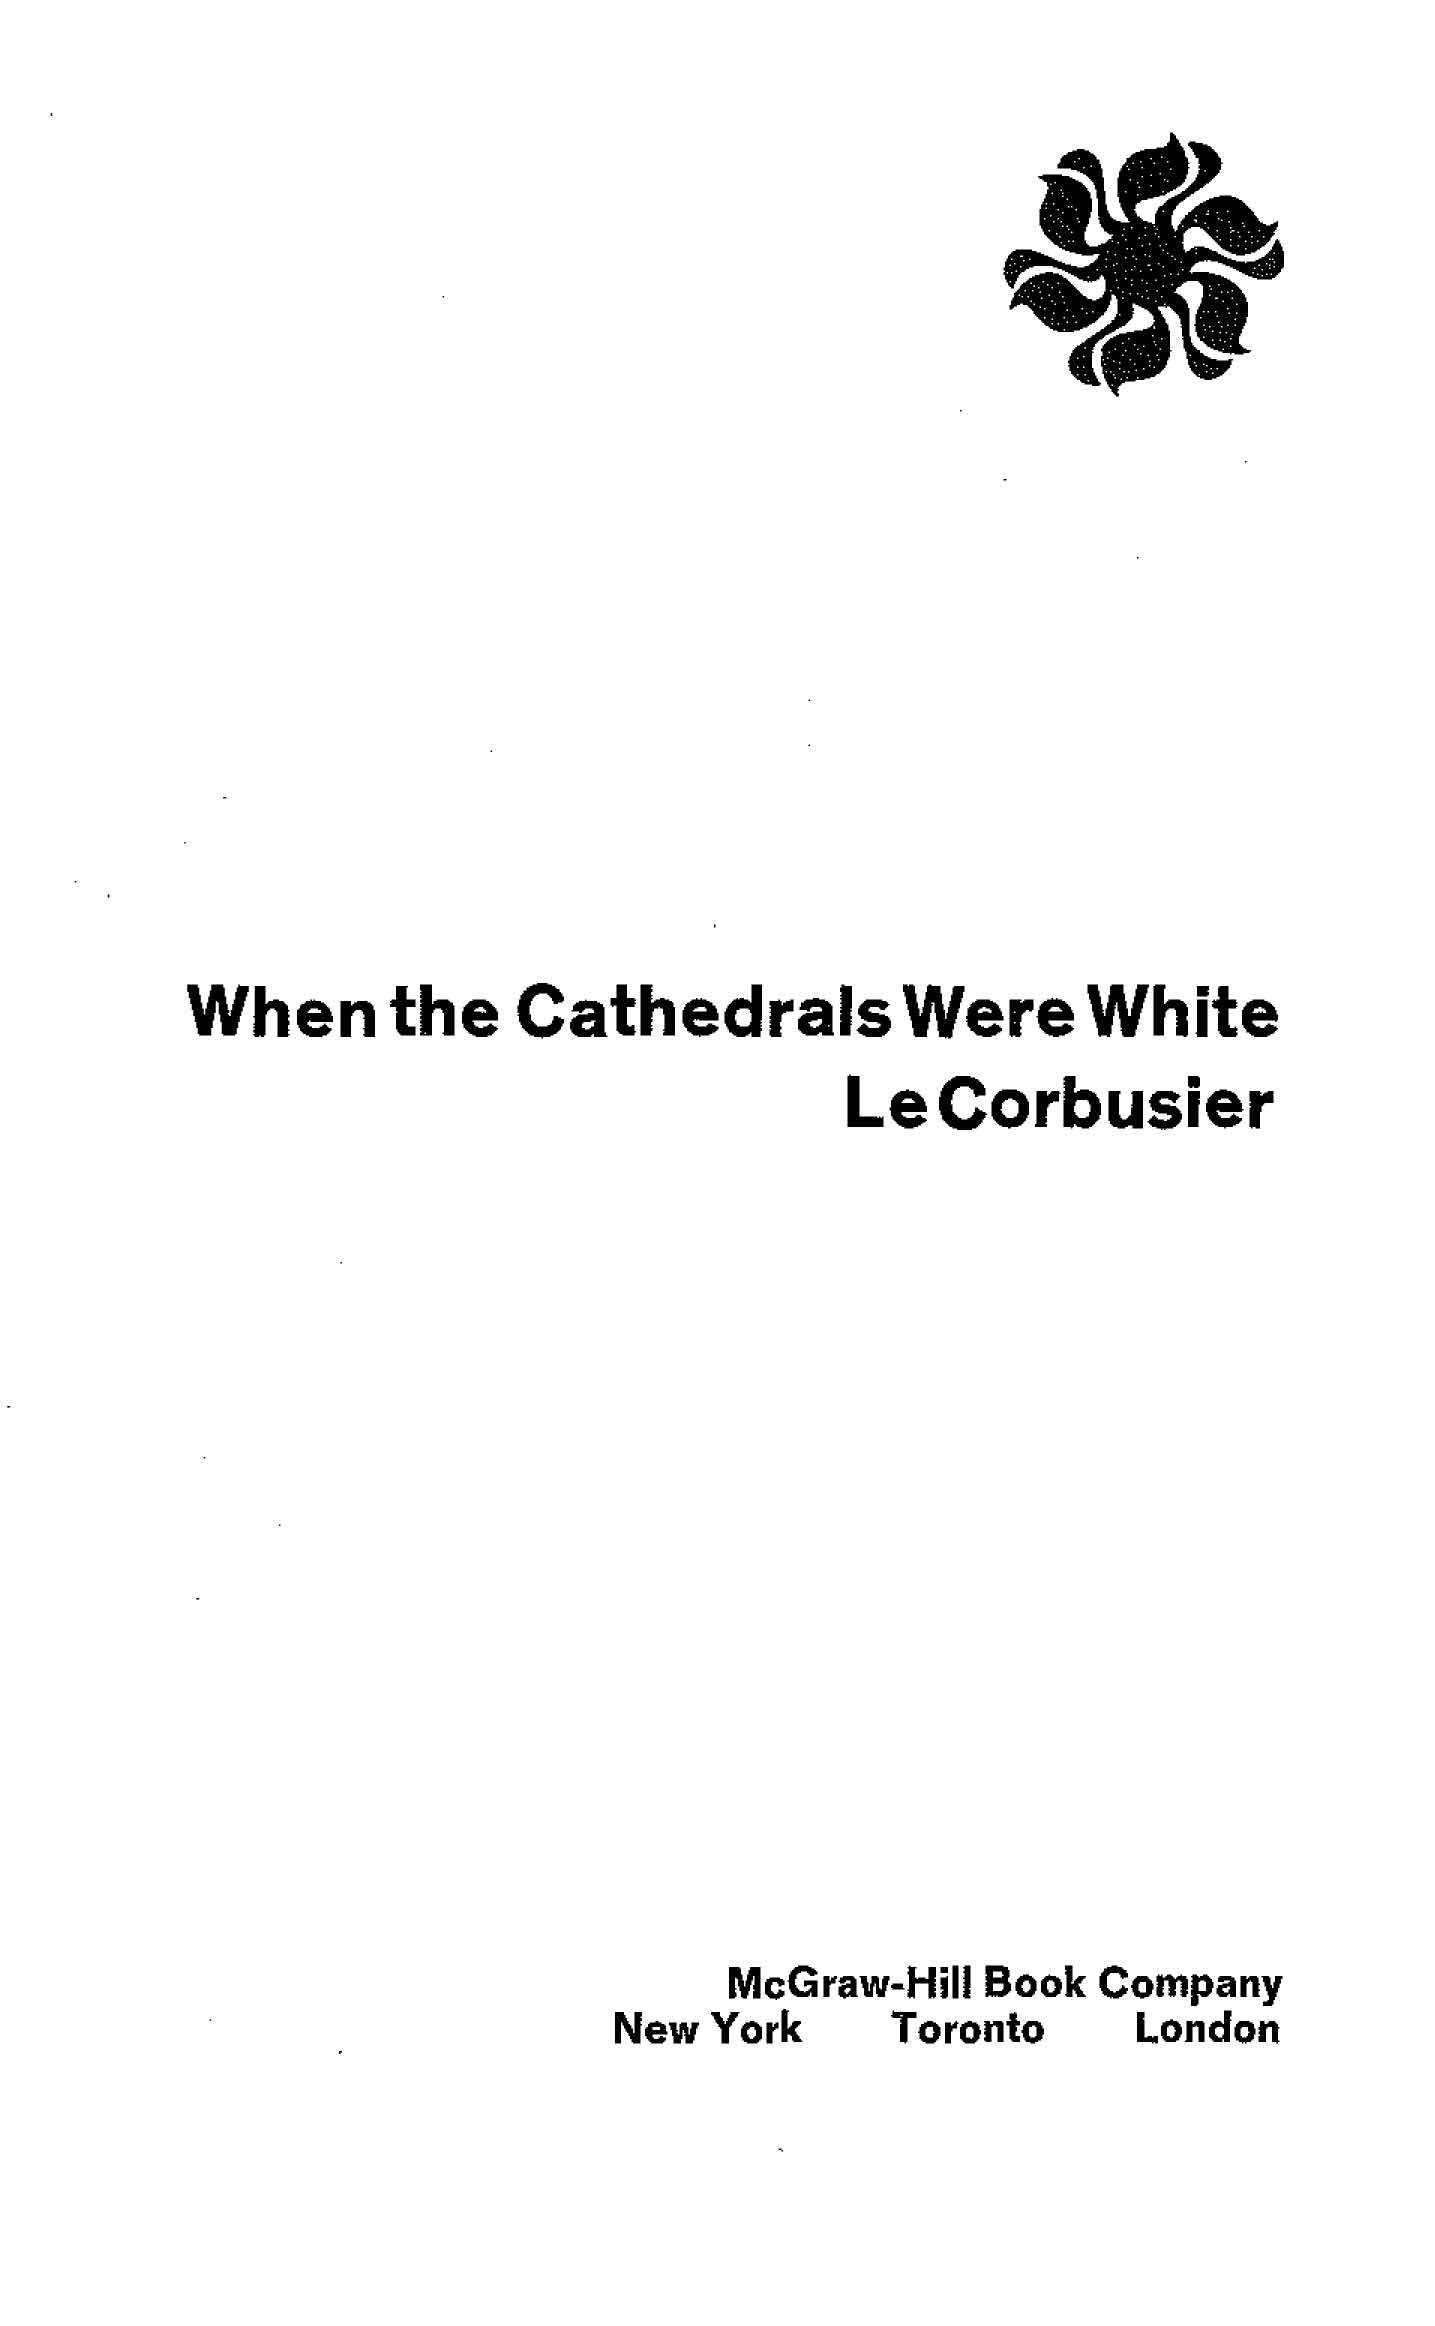 When the Cathedrals Were White LeCorbusier